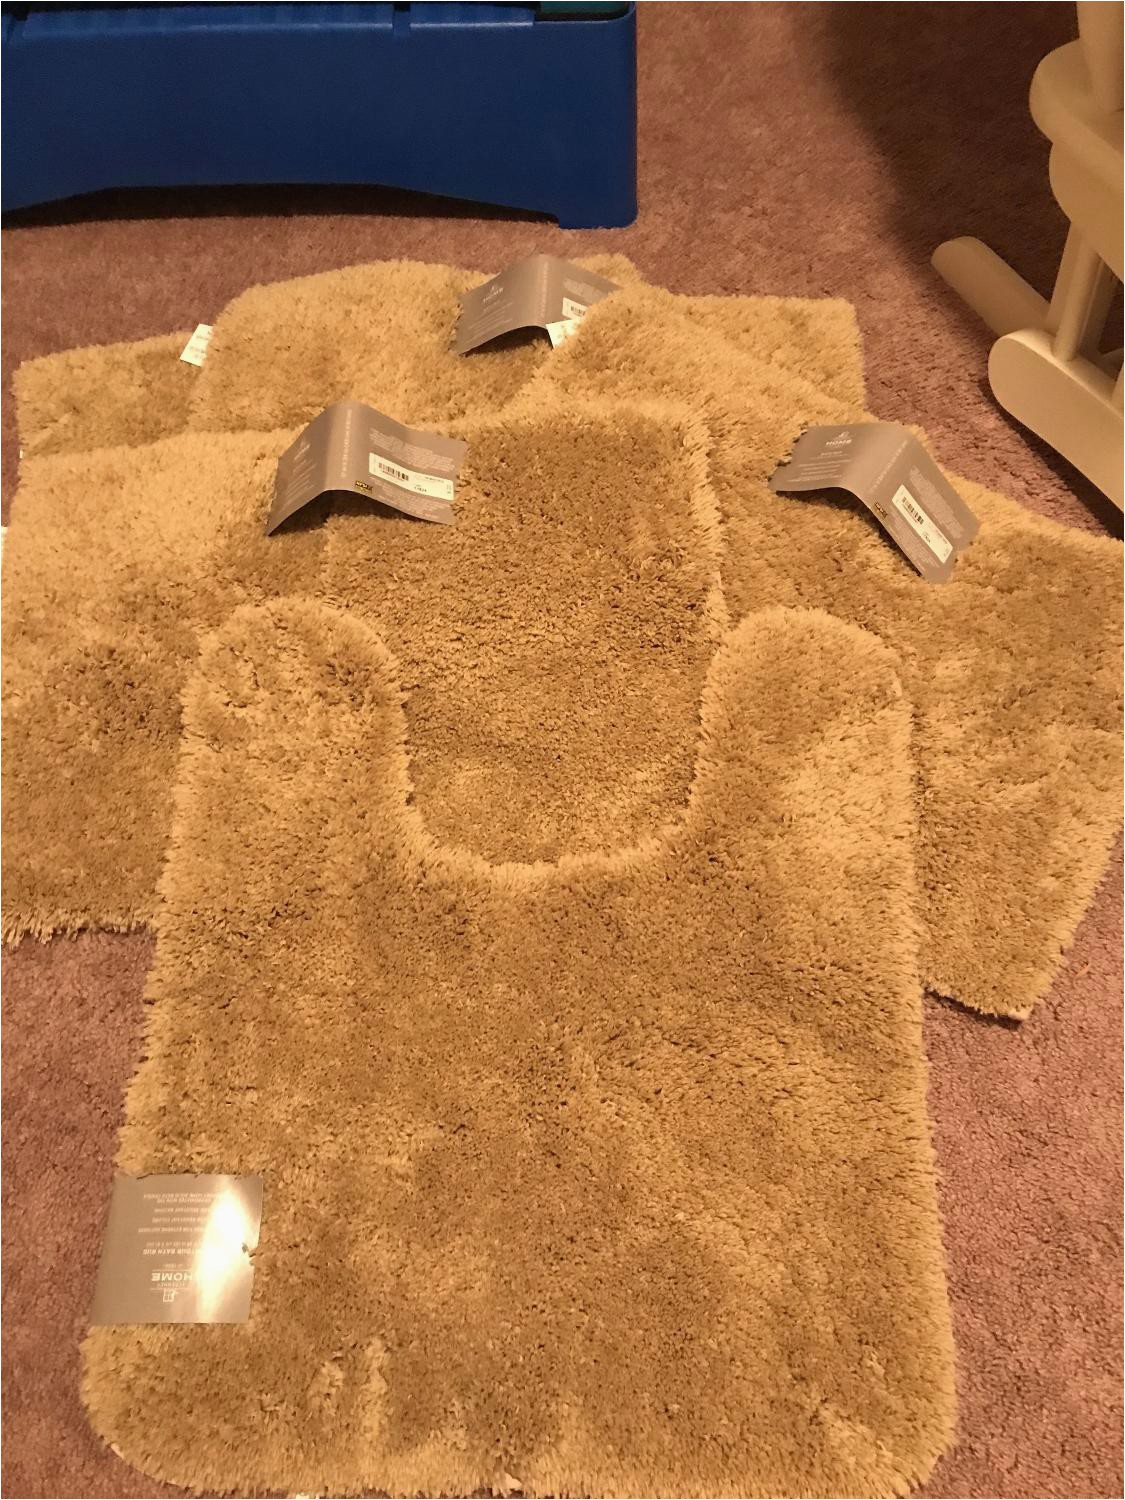 Jcpenney Contour Bath Rugs 5 Pc Tan Jcpenney Bath Rugs $8 Each